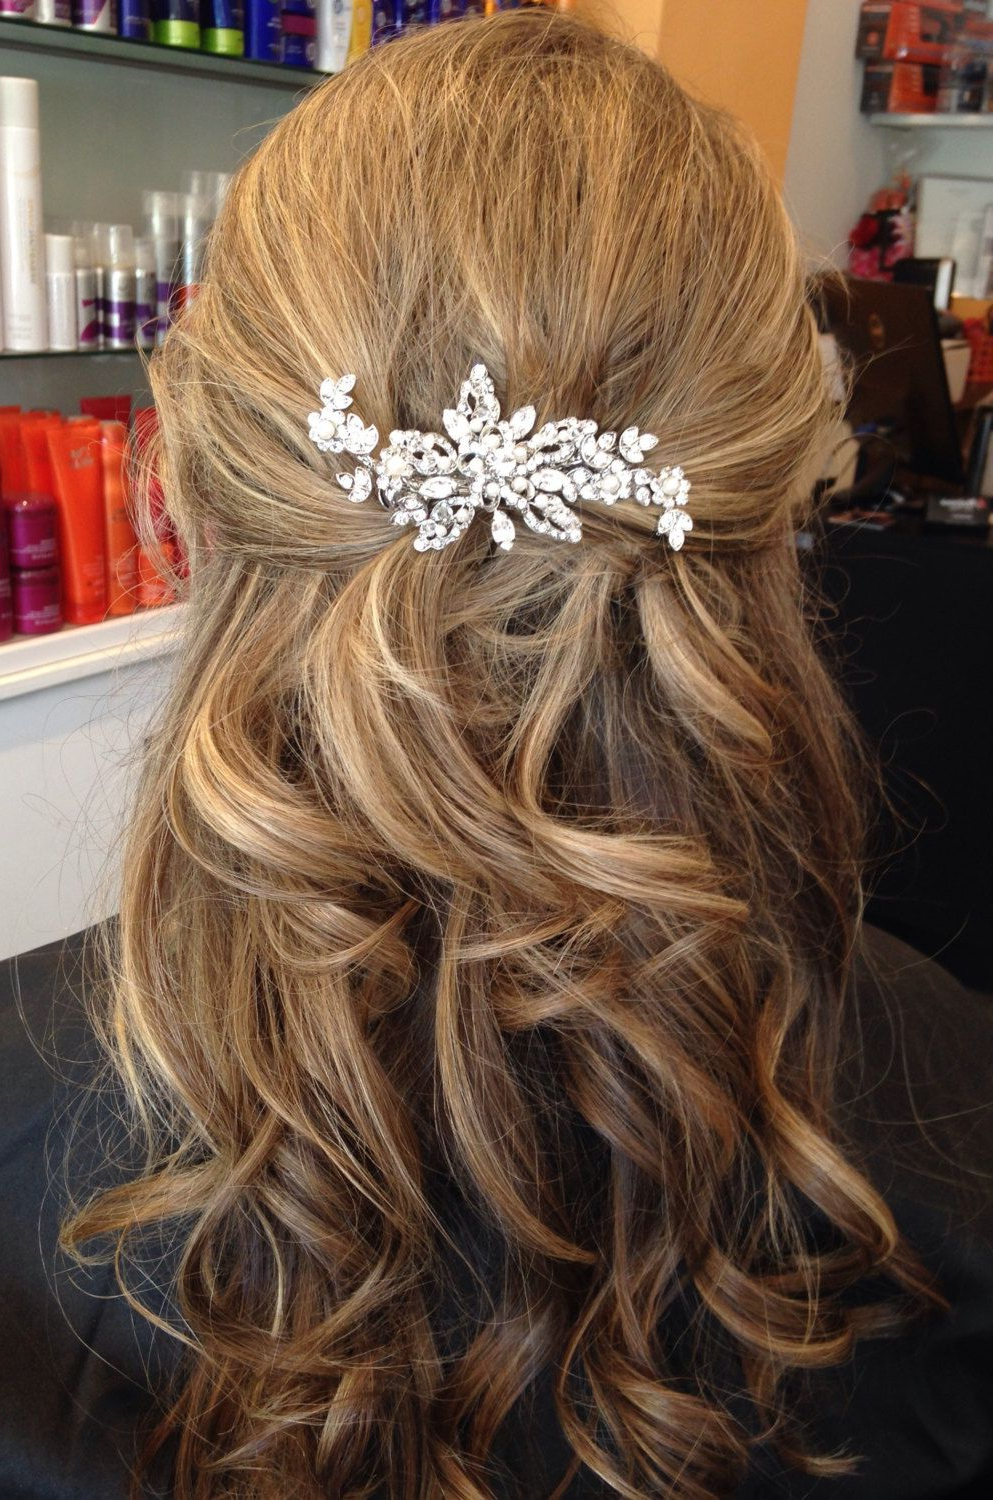 Fashionable Bedazzled Chic Hairstyles For Wedding Within Vintage Inspired Bridal Hair Accessories Rhinestone Wedding Hair (View 7 of 20)